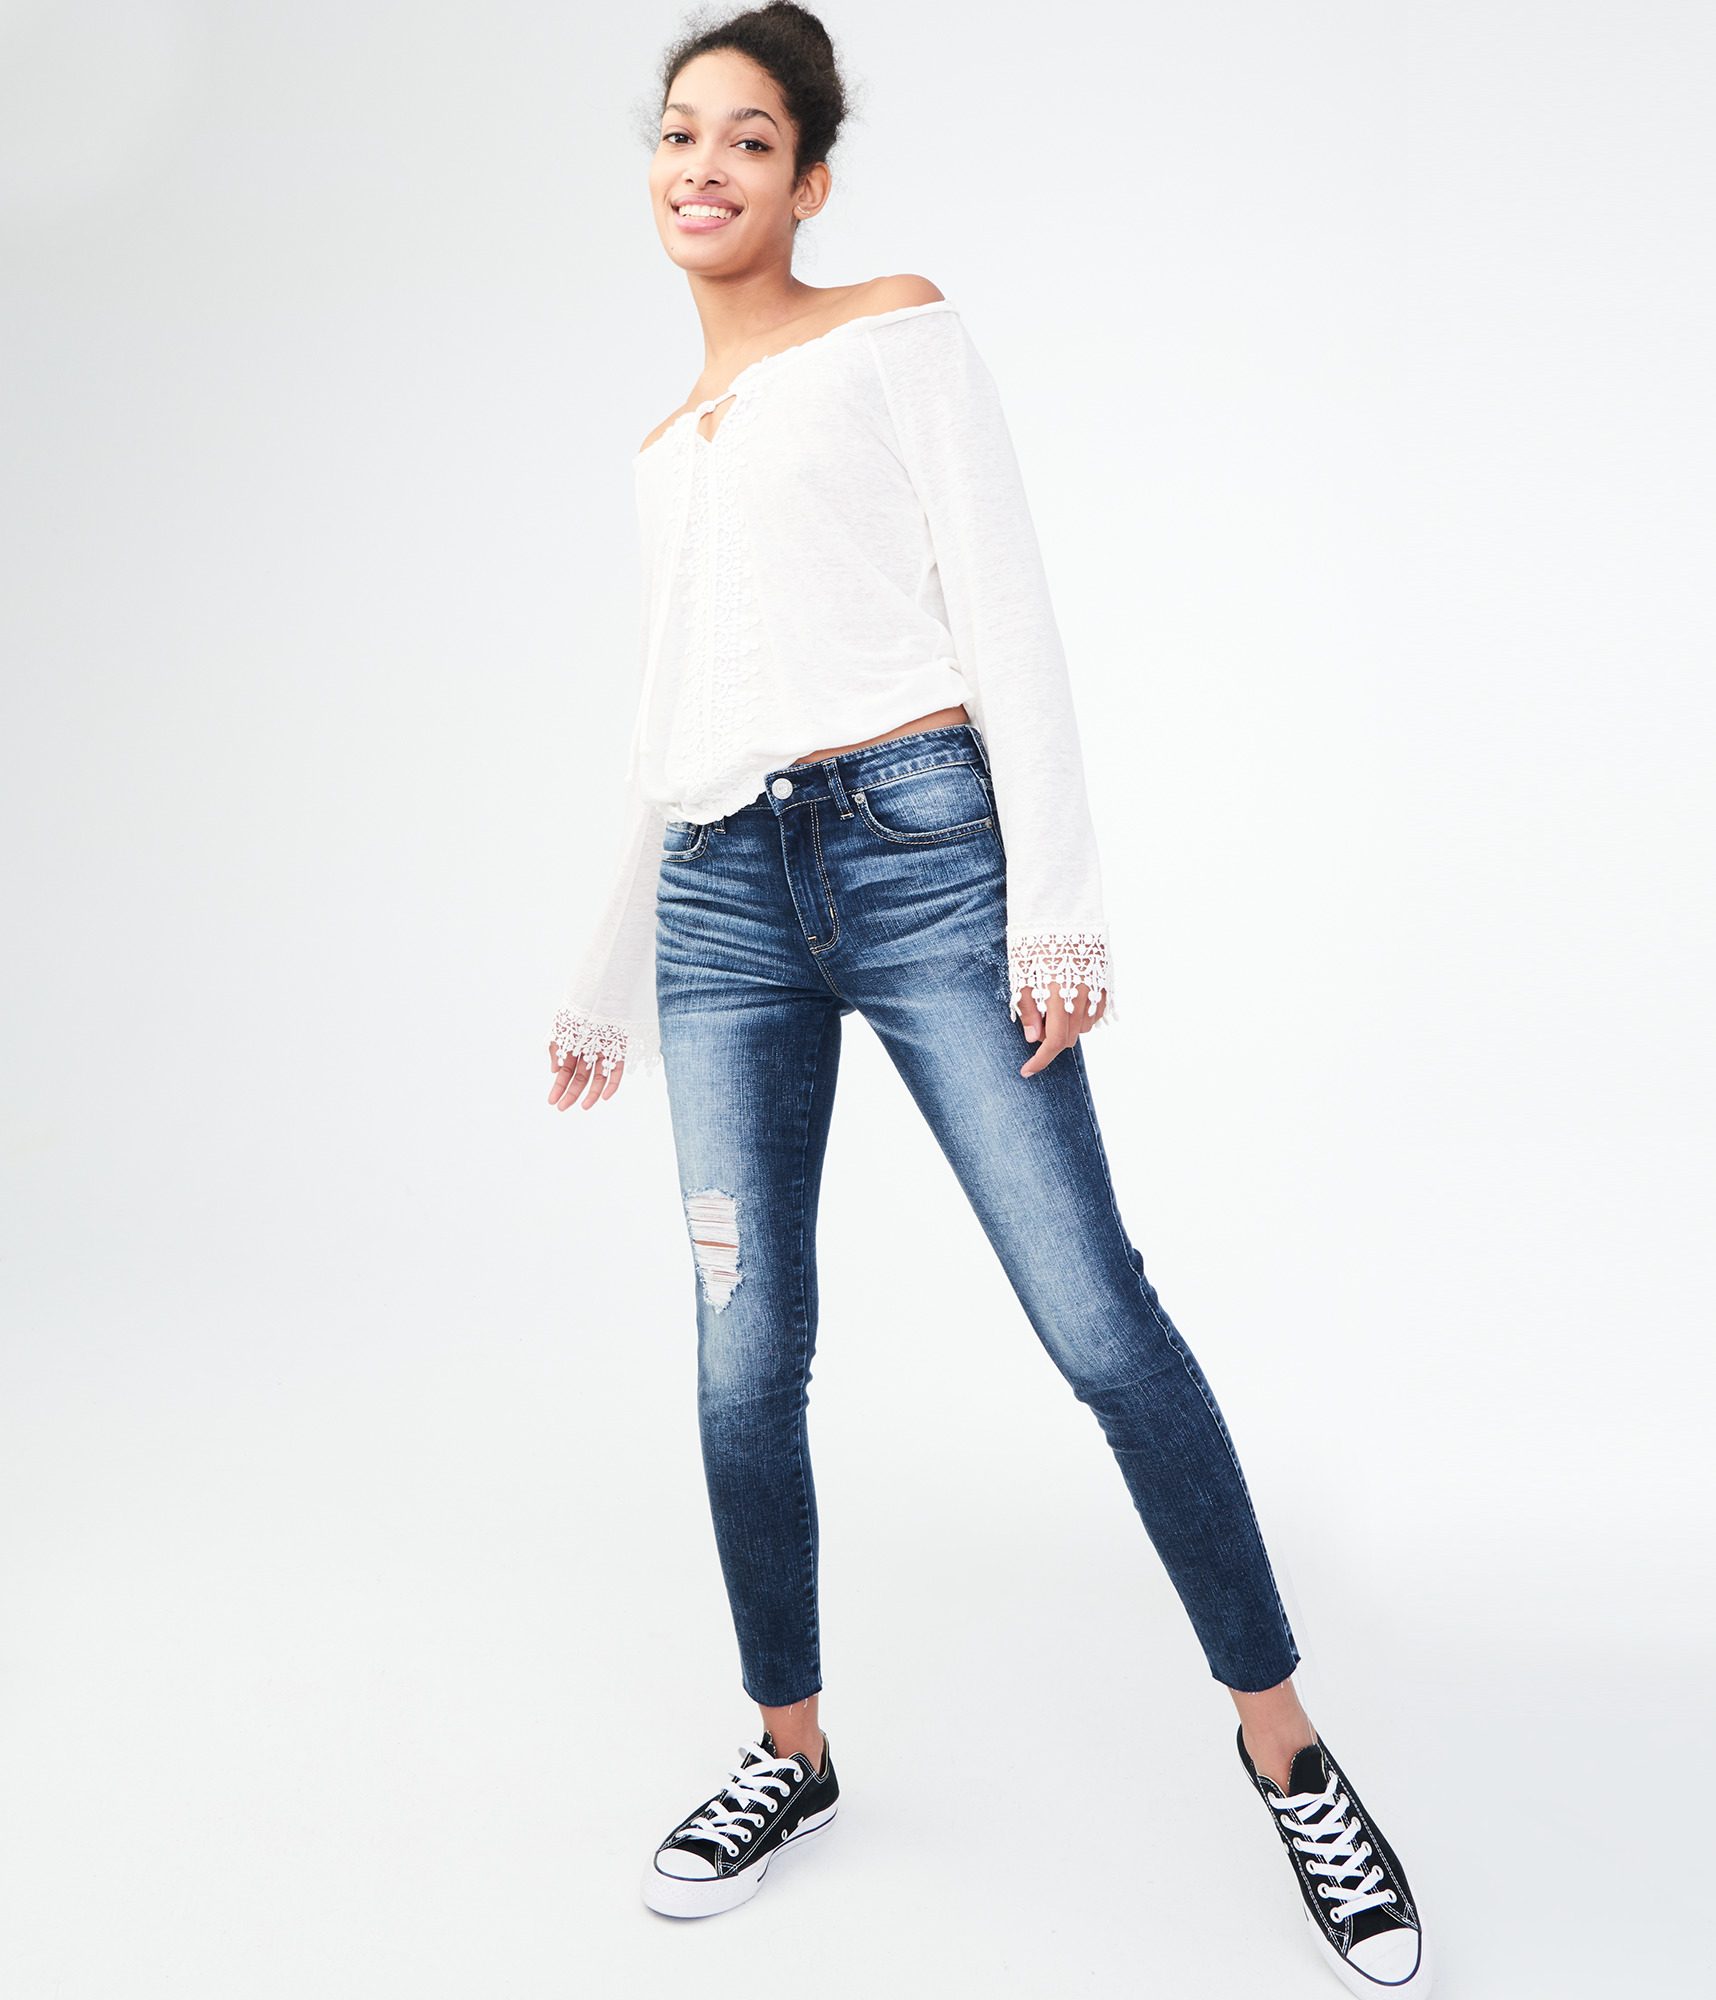 Aeropostale Seriously Stretchy High-Waisted Ankle Jegging - Dark Wash, 10 R